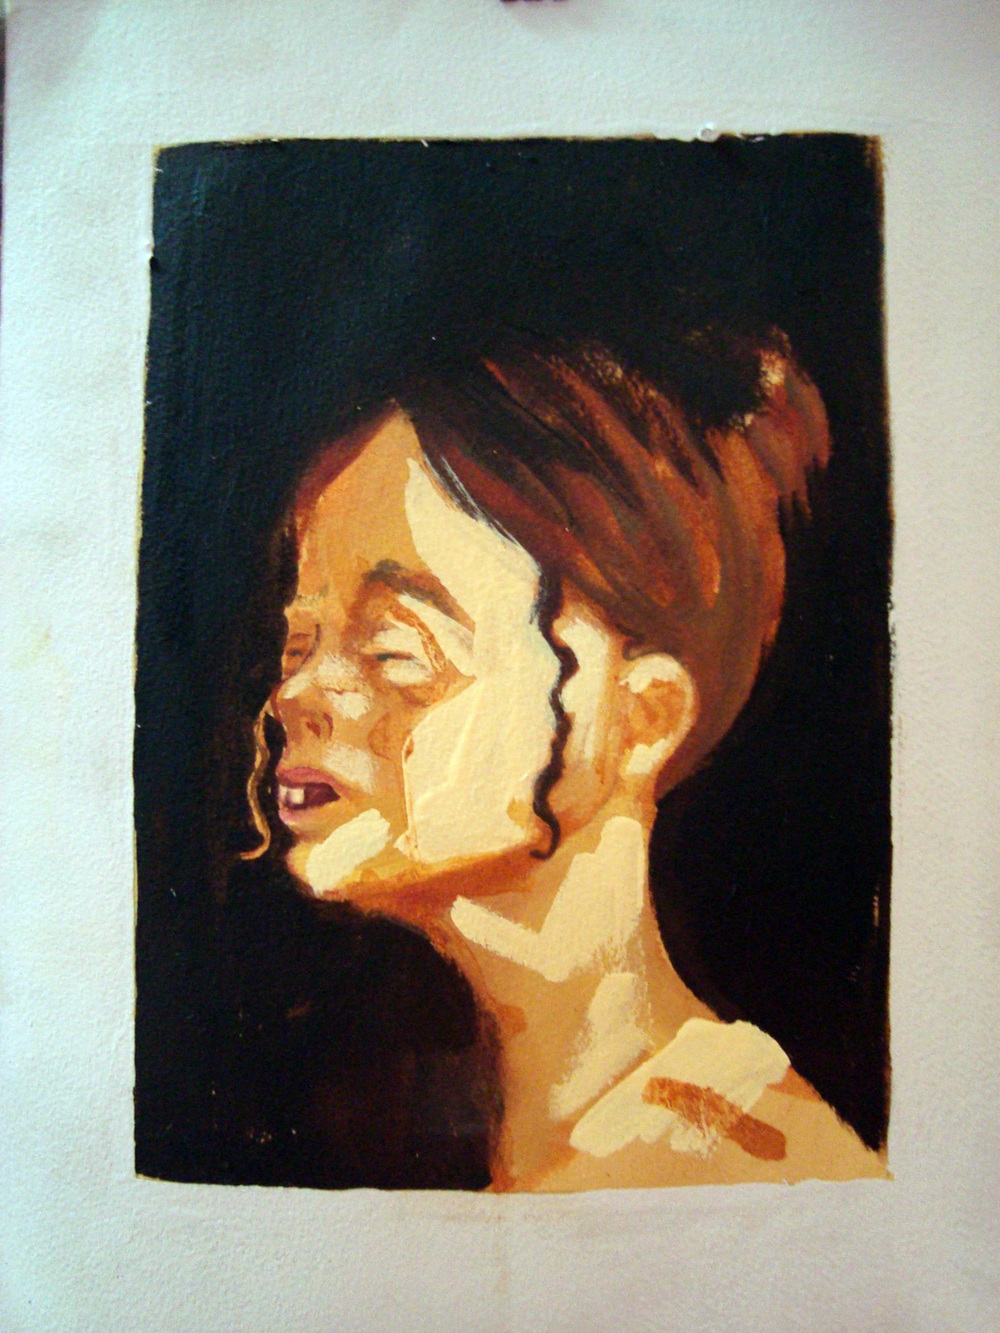 Forgotten Loves III, Oil on paper, 30x60 cm, 2010